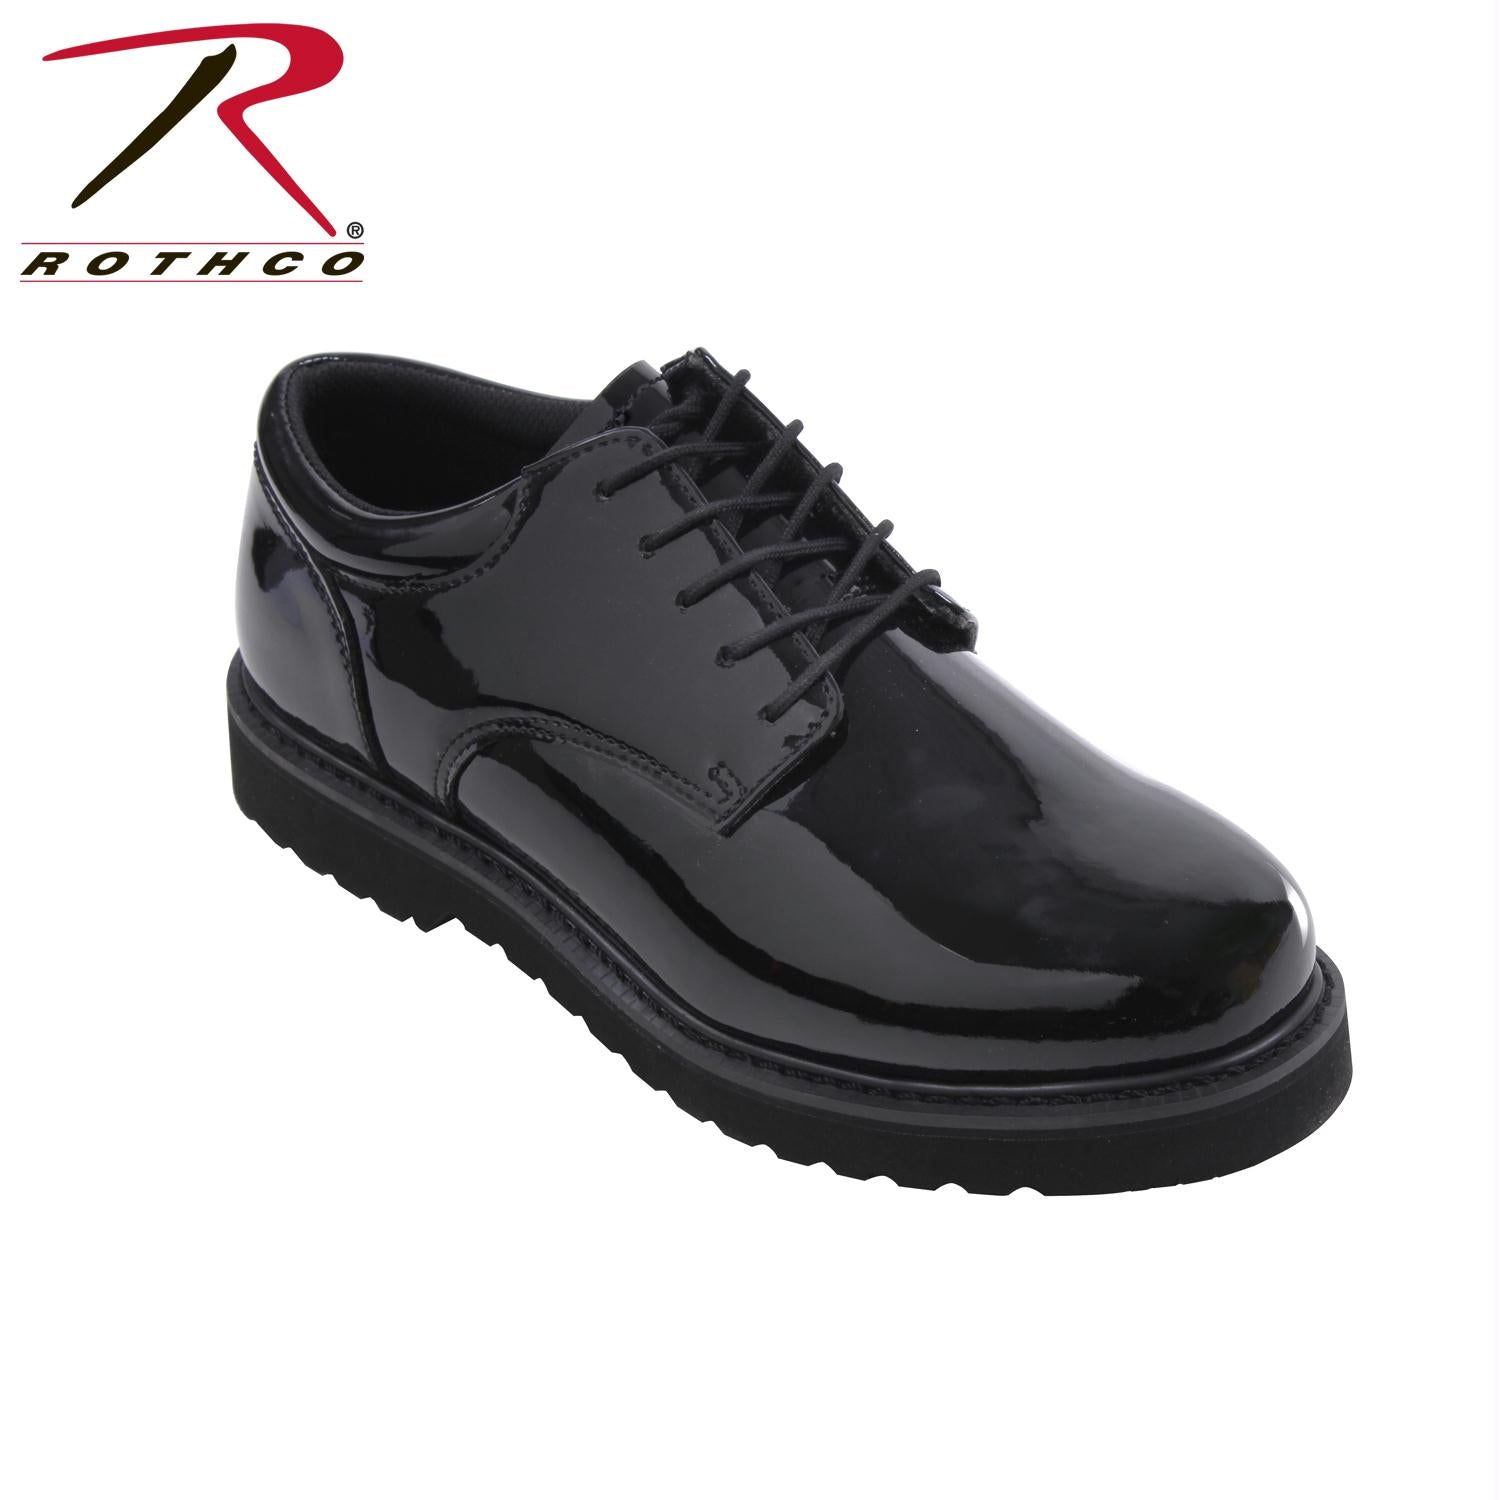 Rothco Uniform Oxford Work Sole - 6.5 / Regular